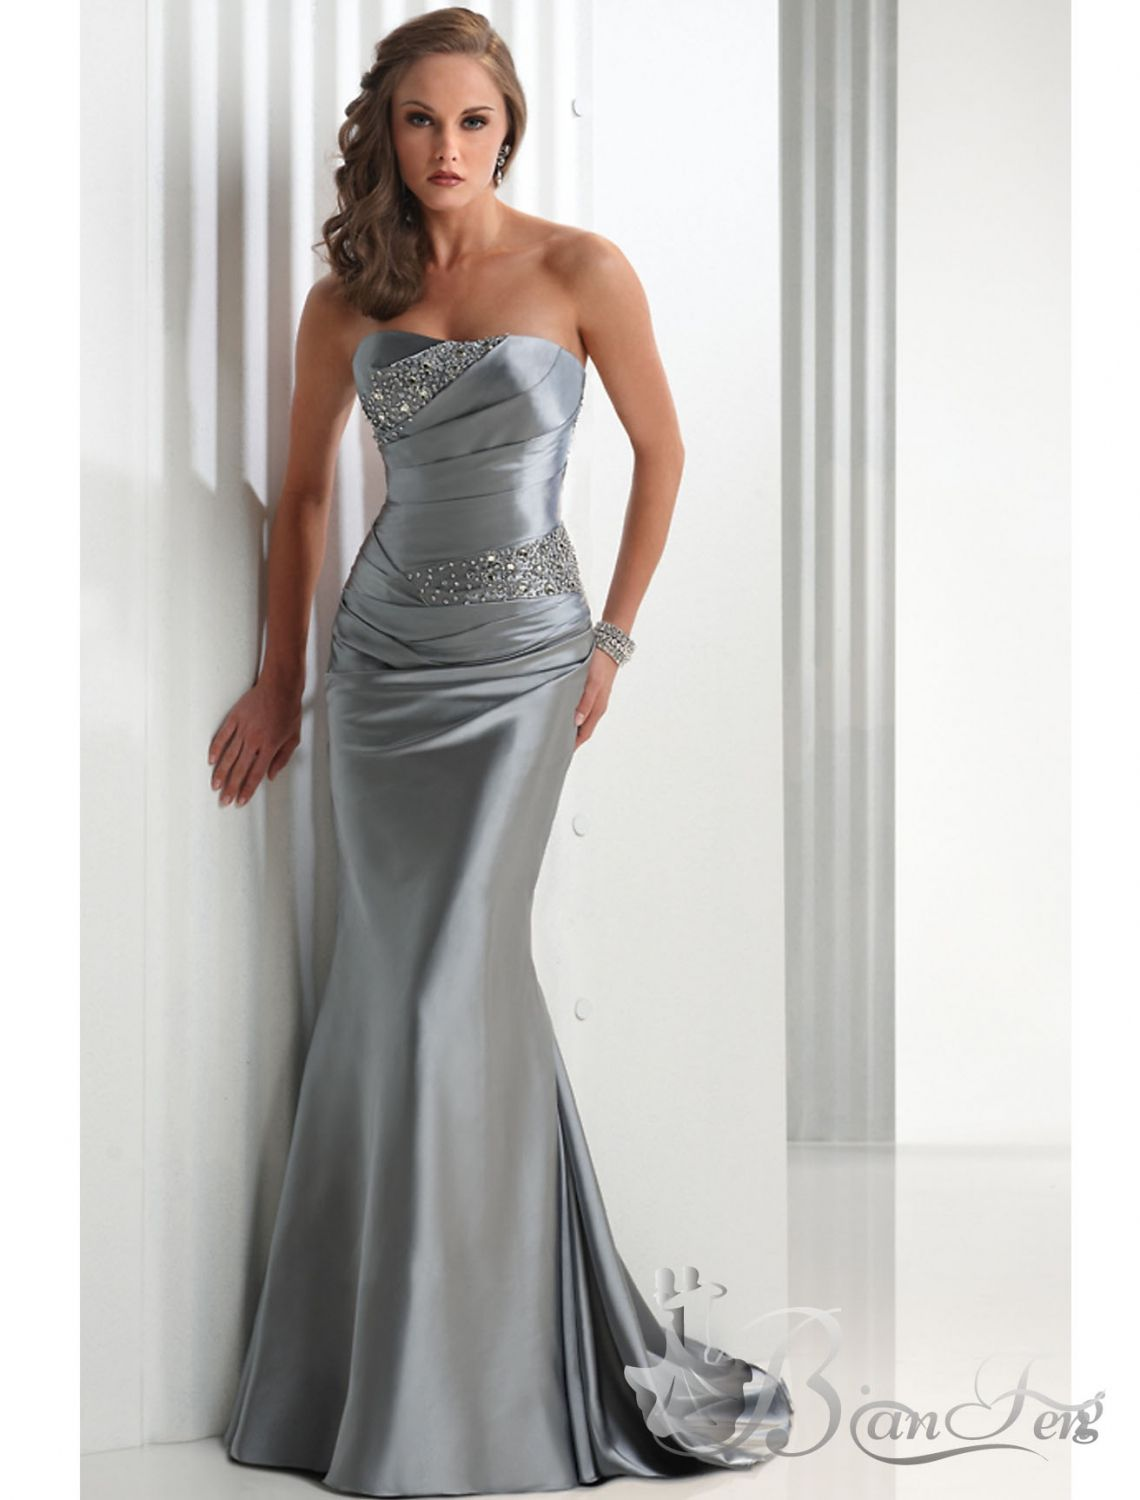 Elegant silver elastic satin strapless floor length prom dress us